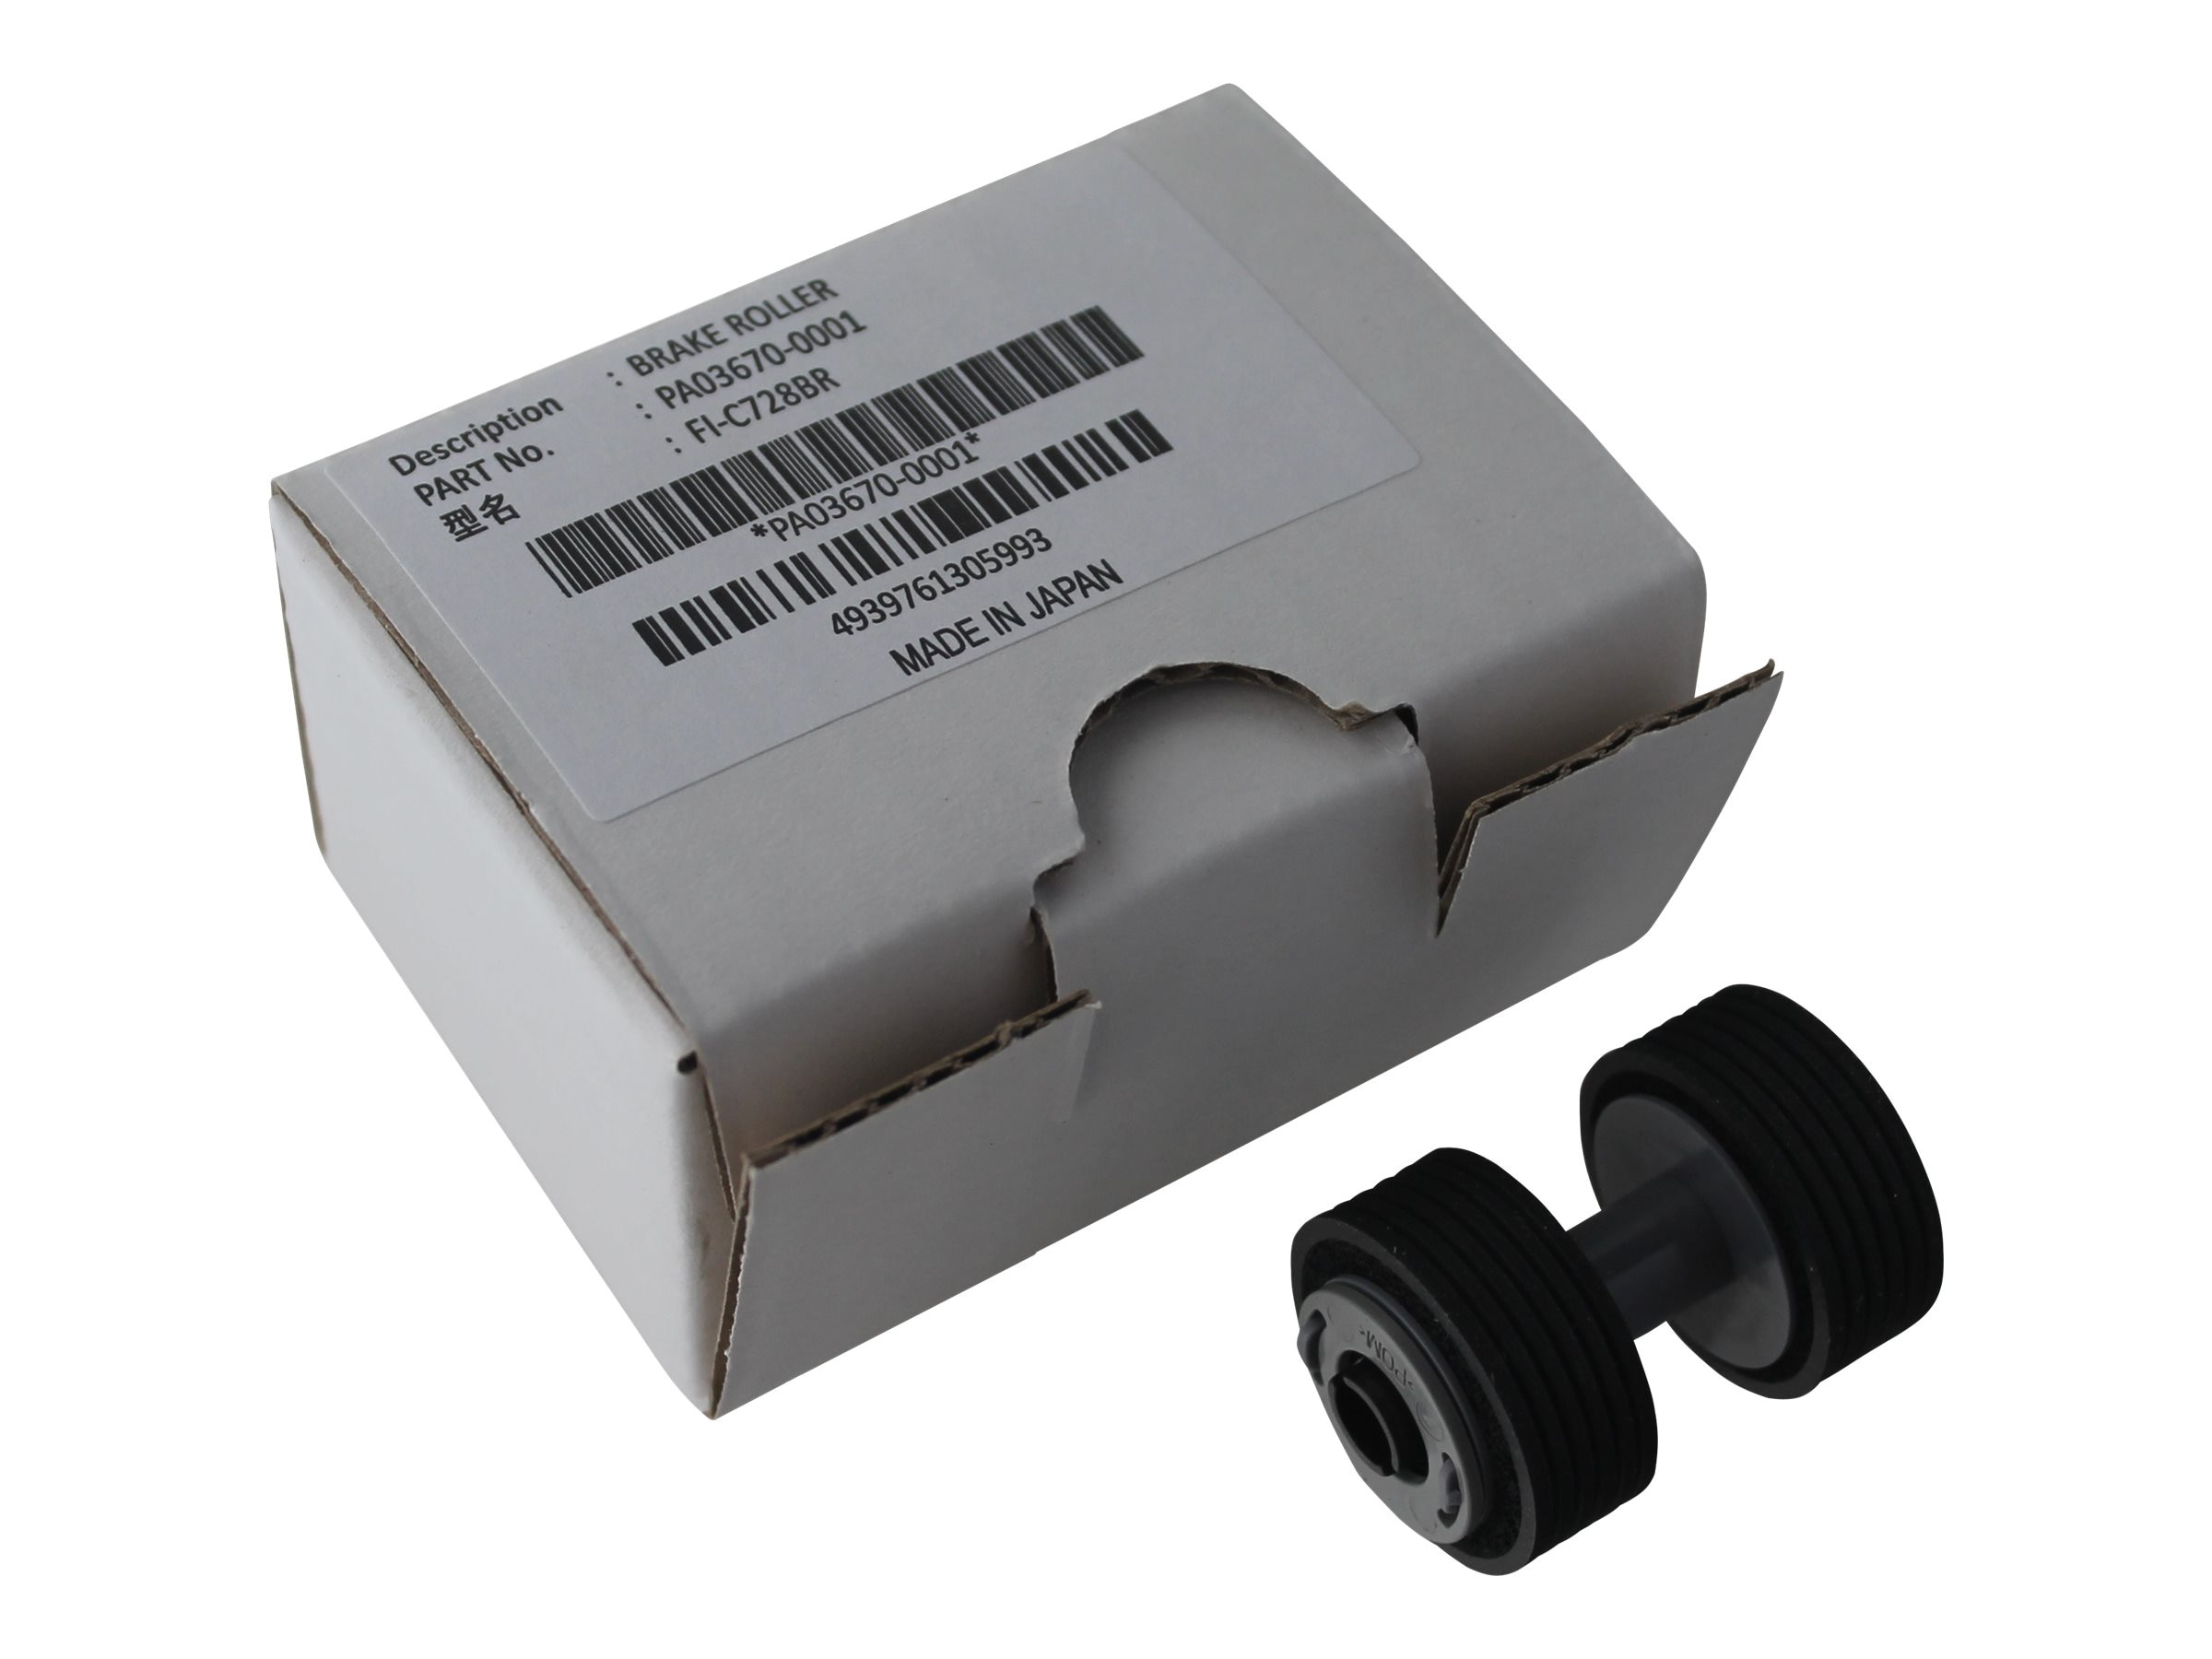 Fujitsu Brake Roller for FI-7X60 FI-7X80 Series, PA03670-0001, 16874714, Scanner Accessories